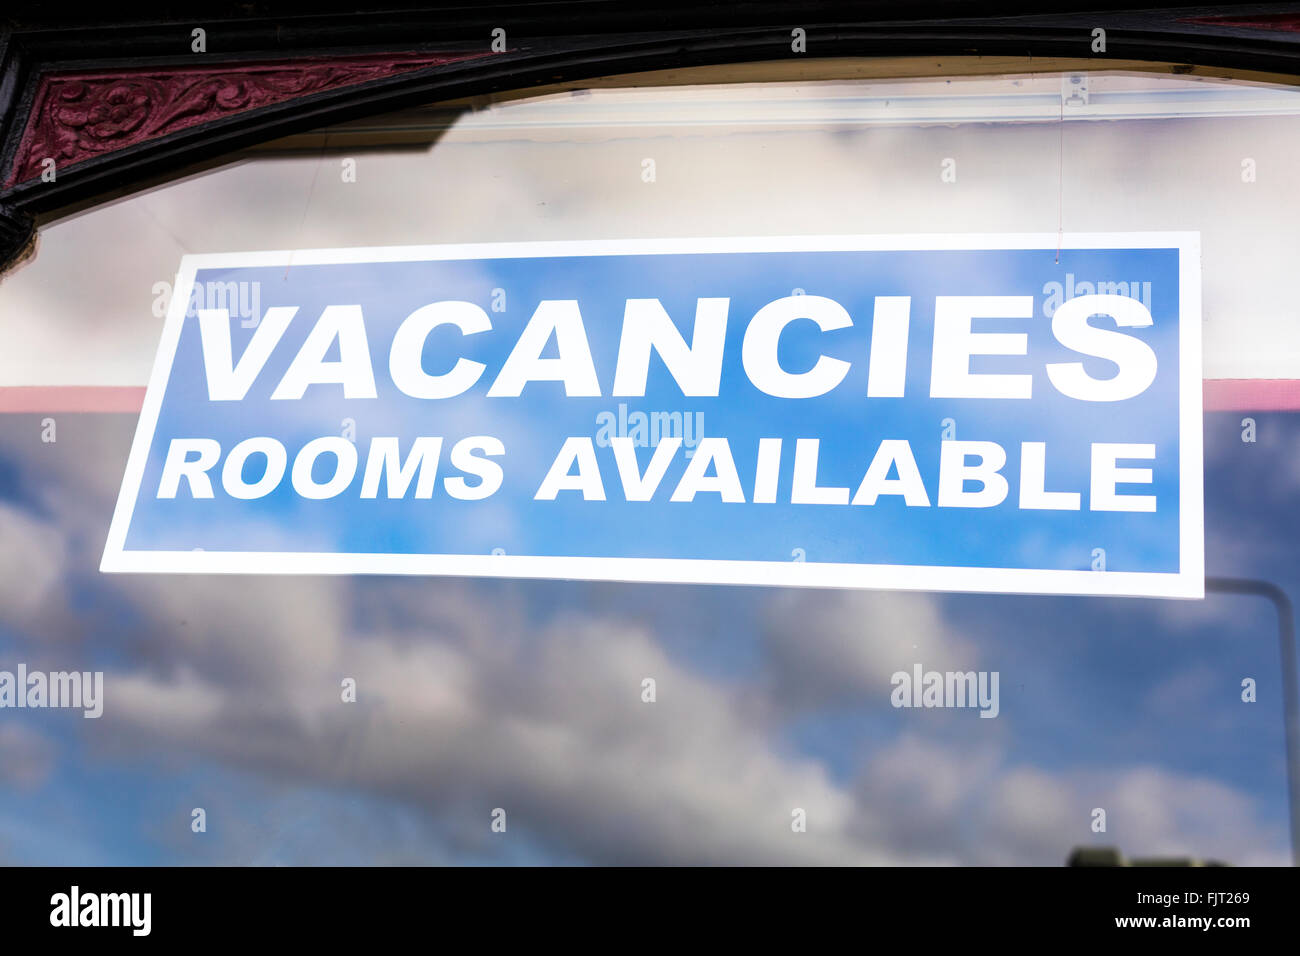 Vacancies rooms available sign hotel guest house room to rent stay lodge - Stock Image